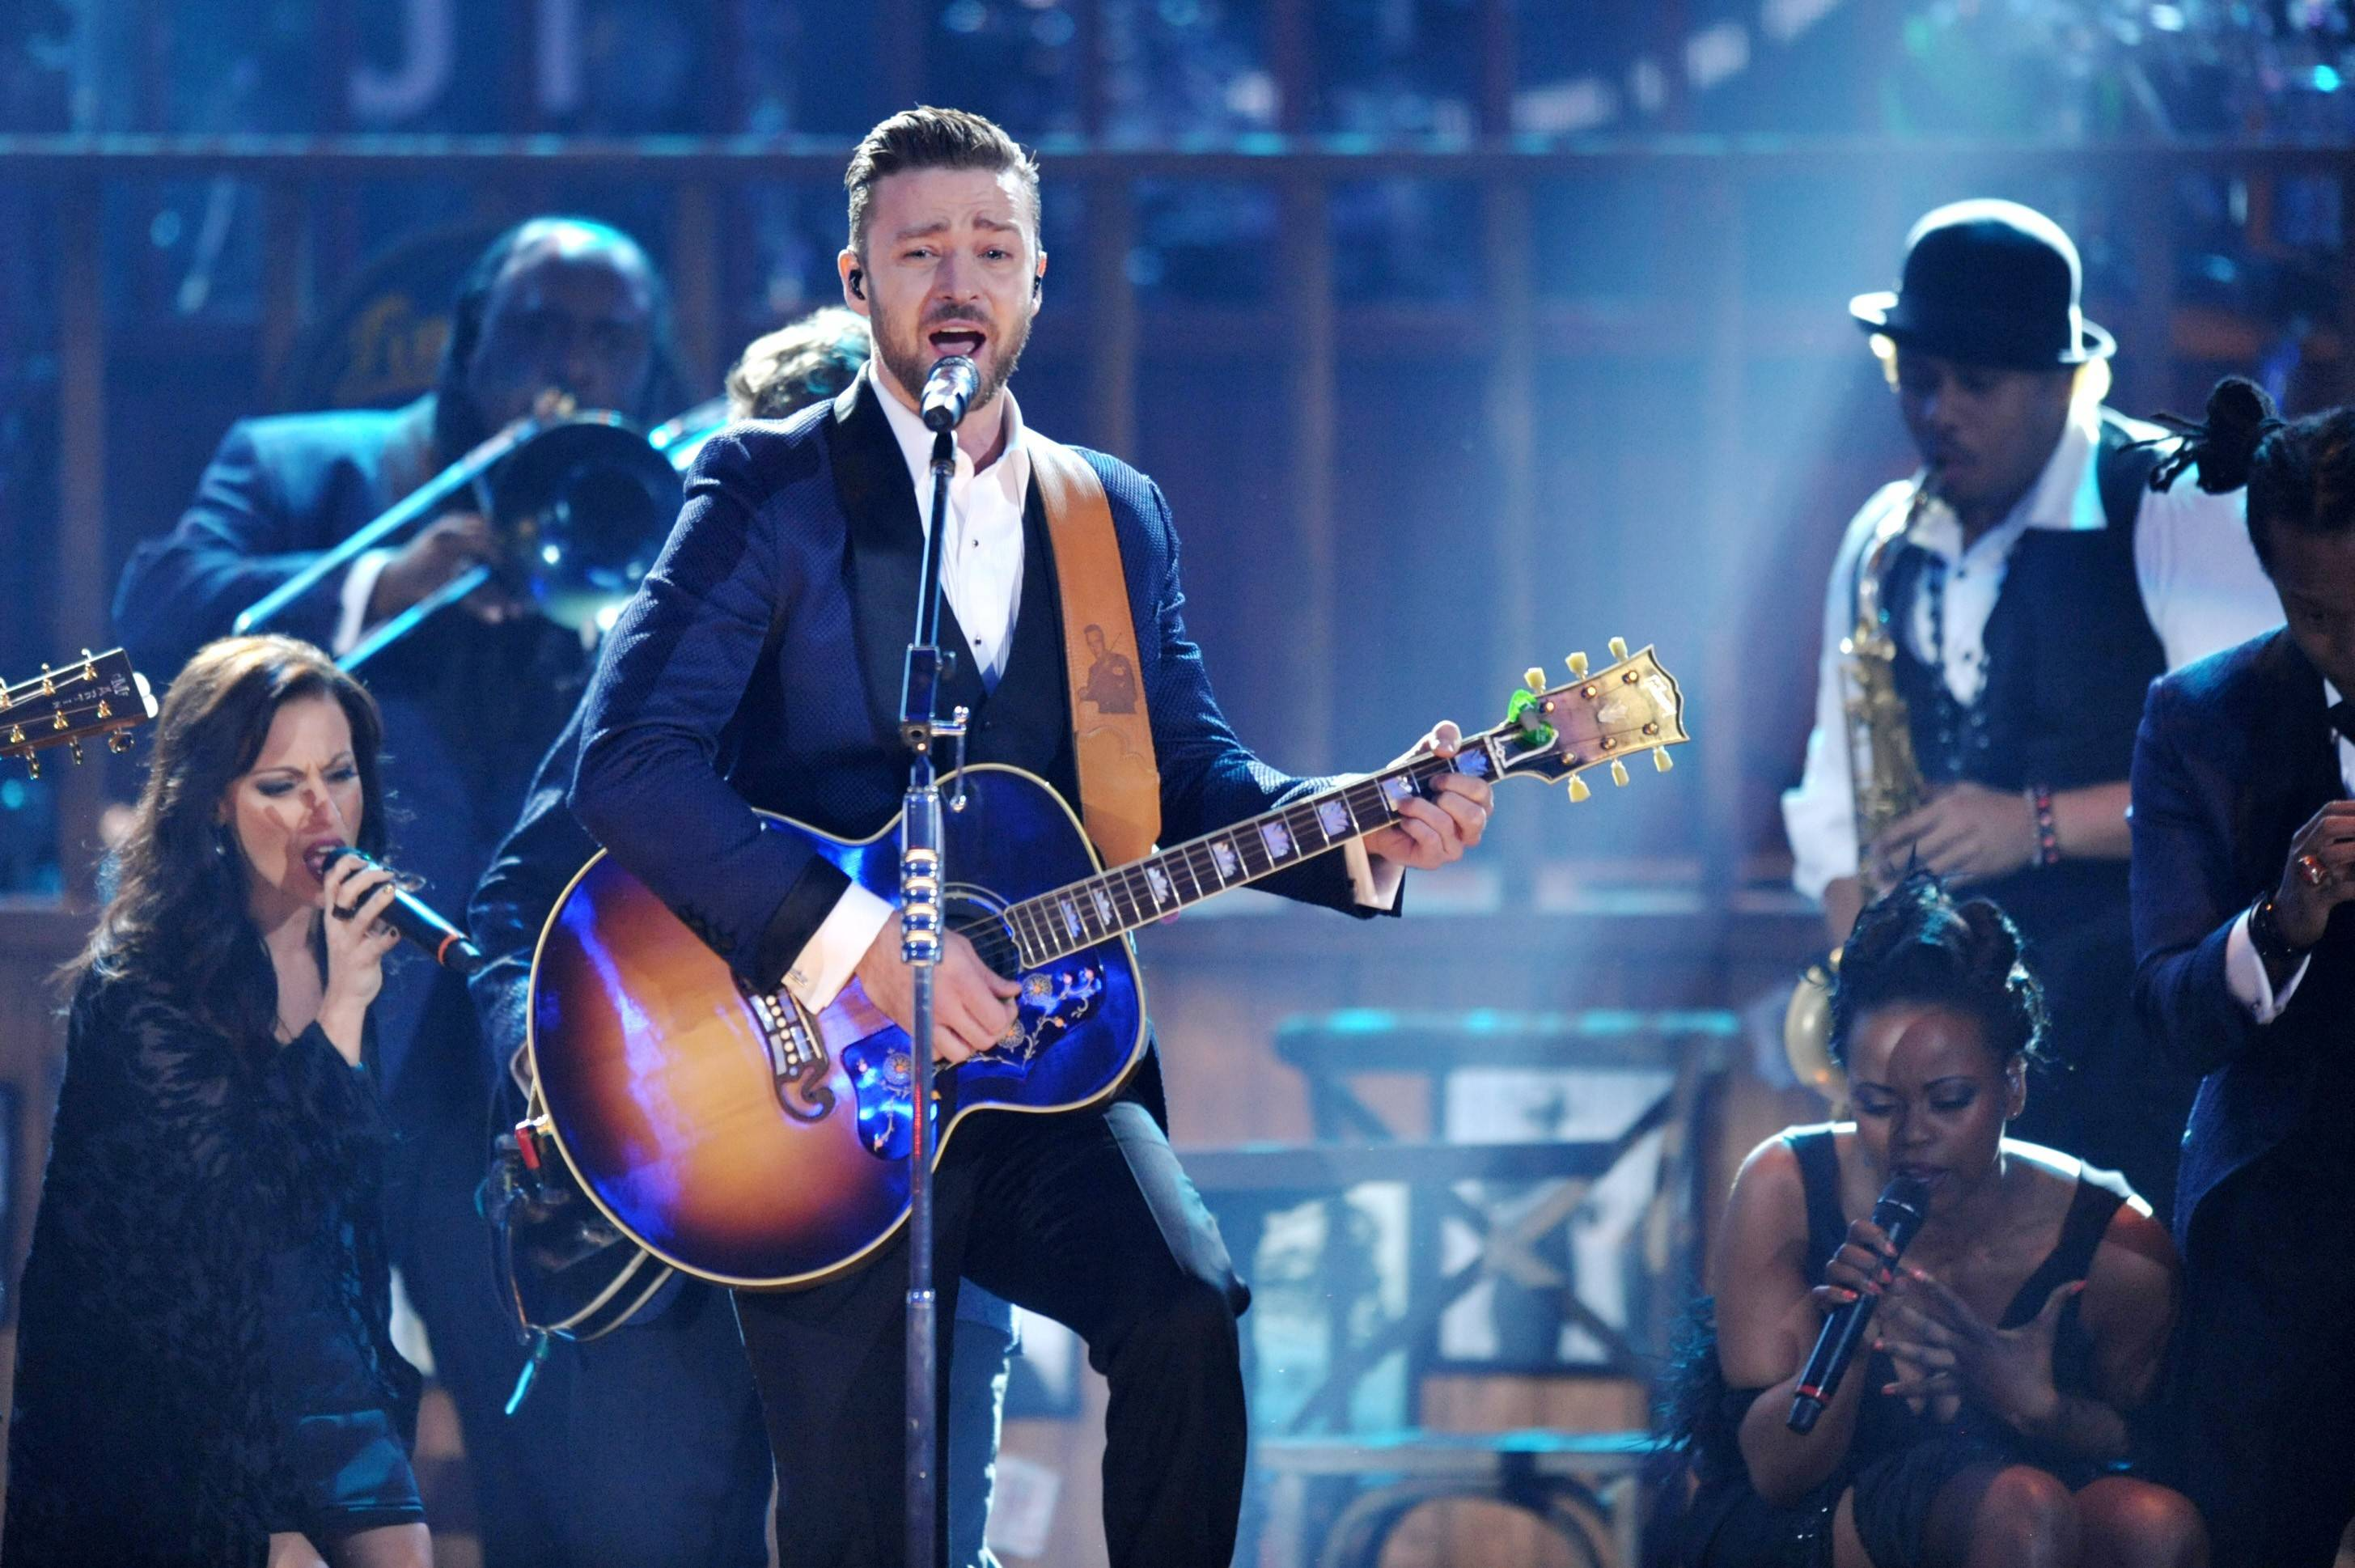 Justin Timberlake brings The 20/20 Experience World Tour to the United Center in Chicago on Sunday and Monday, Feb. 16 and 17.